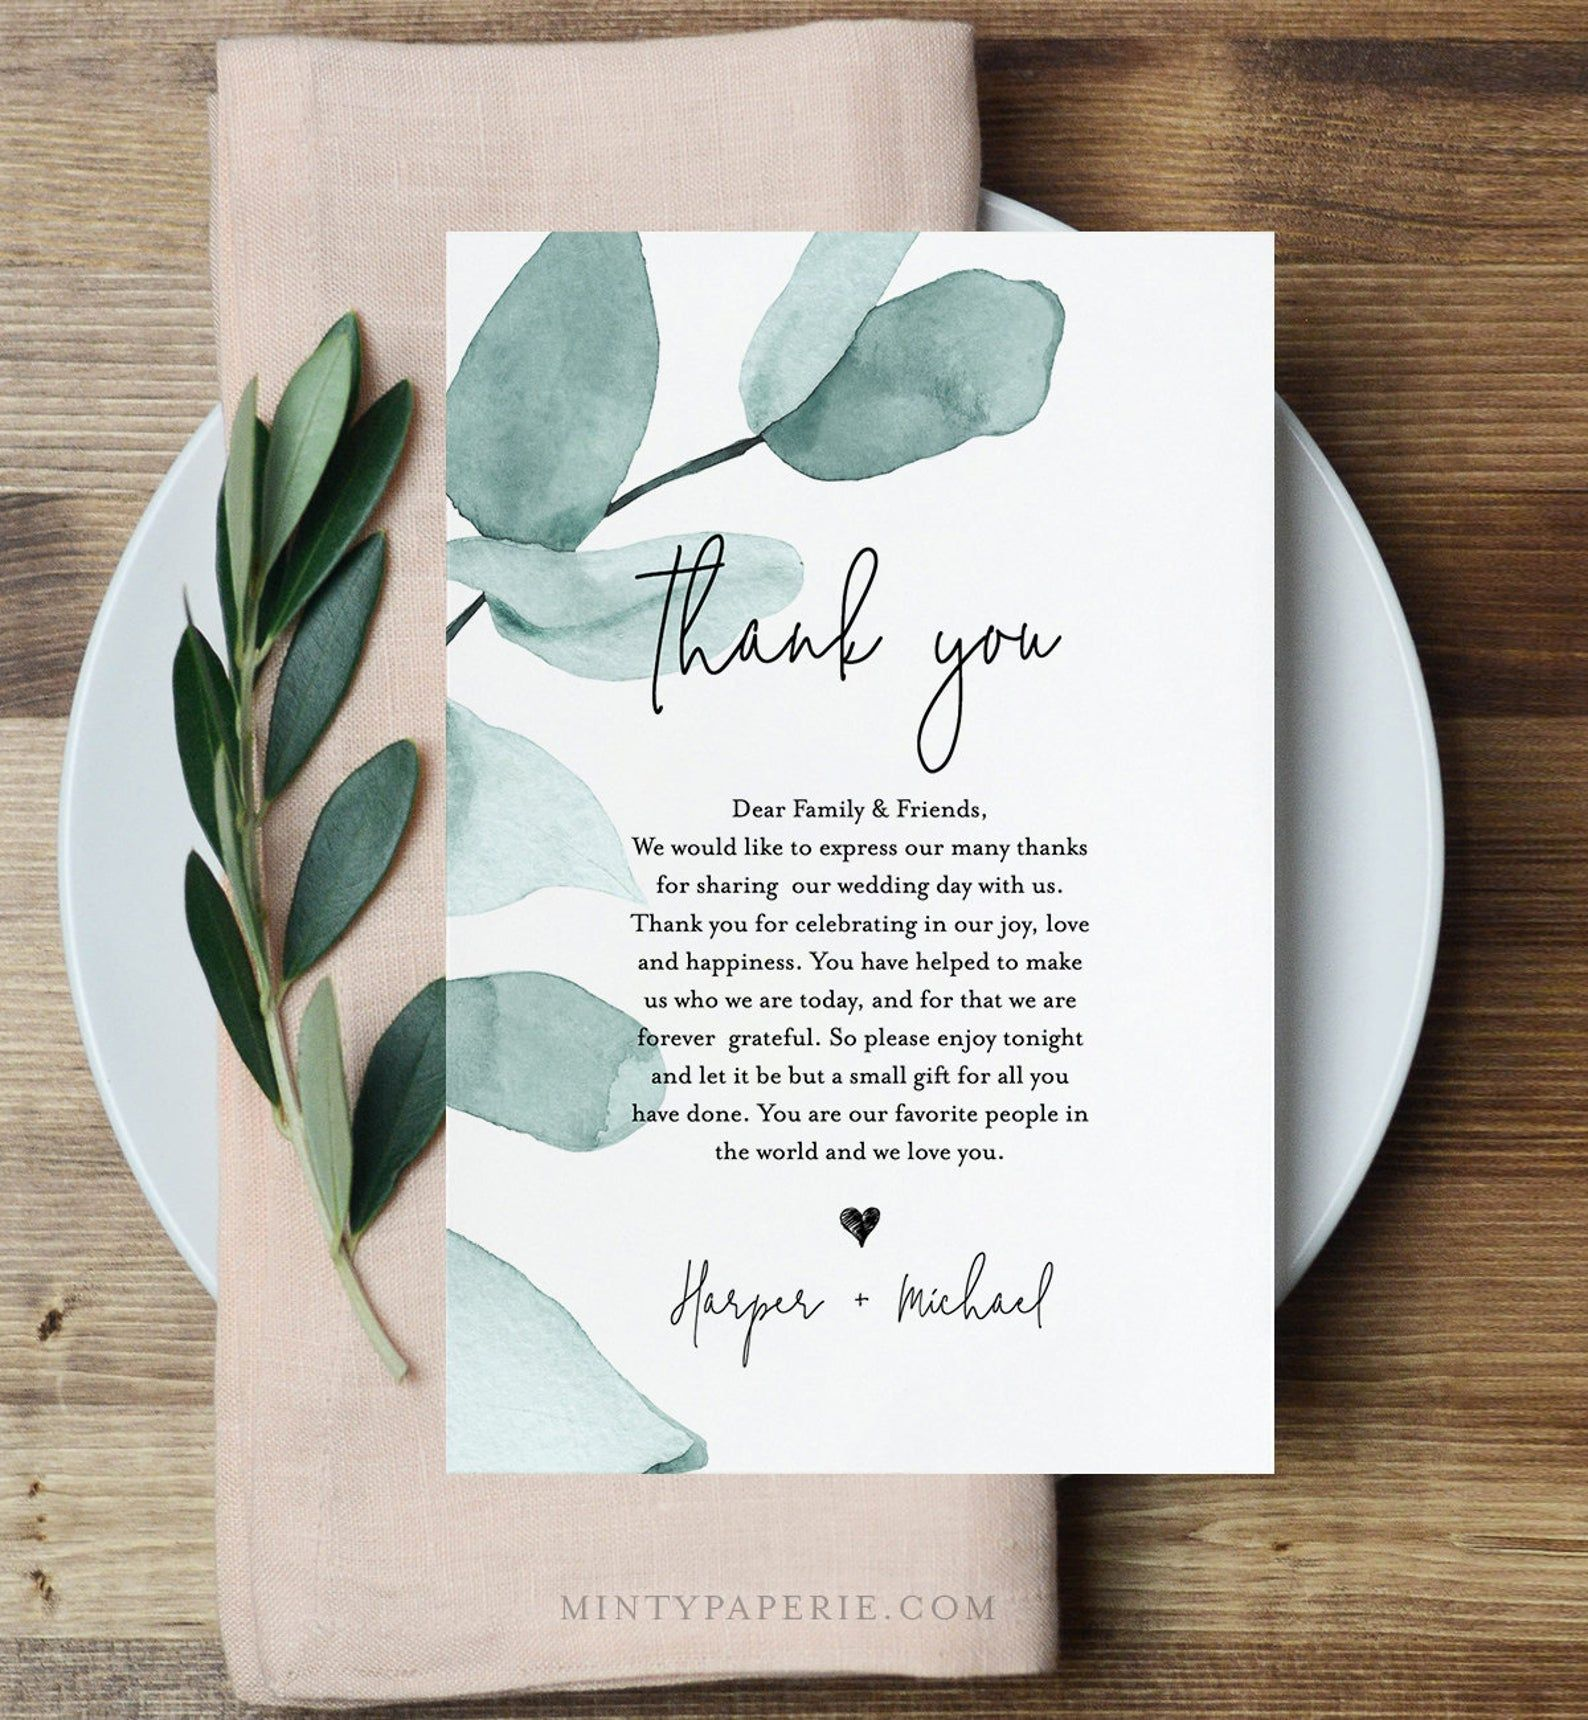 INSTANT DOWNLOAD Wedding Reception Thank You Note Card Printable Wedding Thank You Letter Rustic Foliage Thank You Letter Template